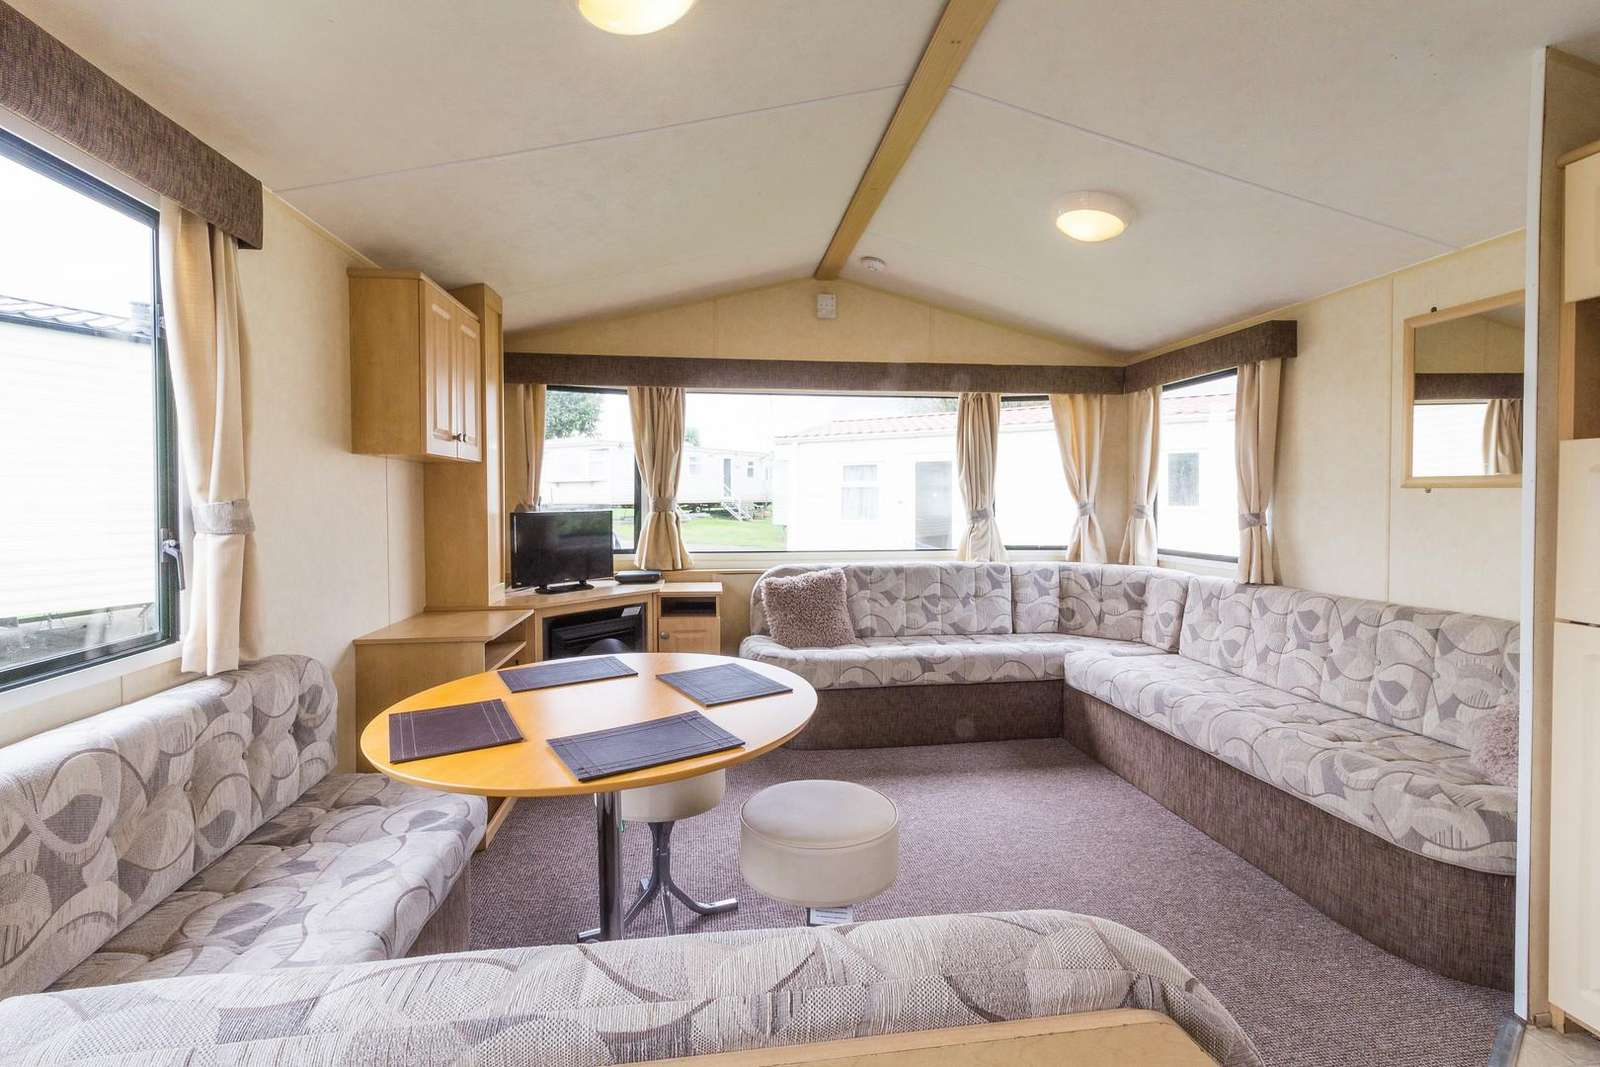 Self-catering holidays in Norfolk. - property